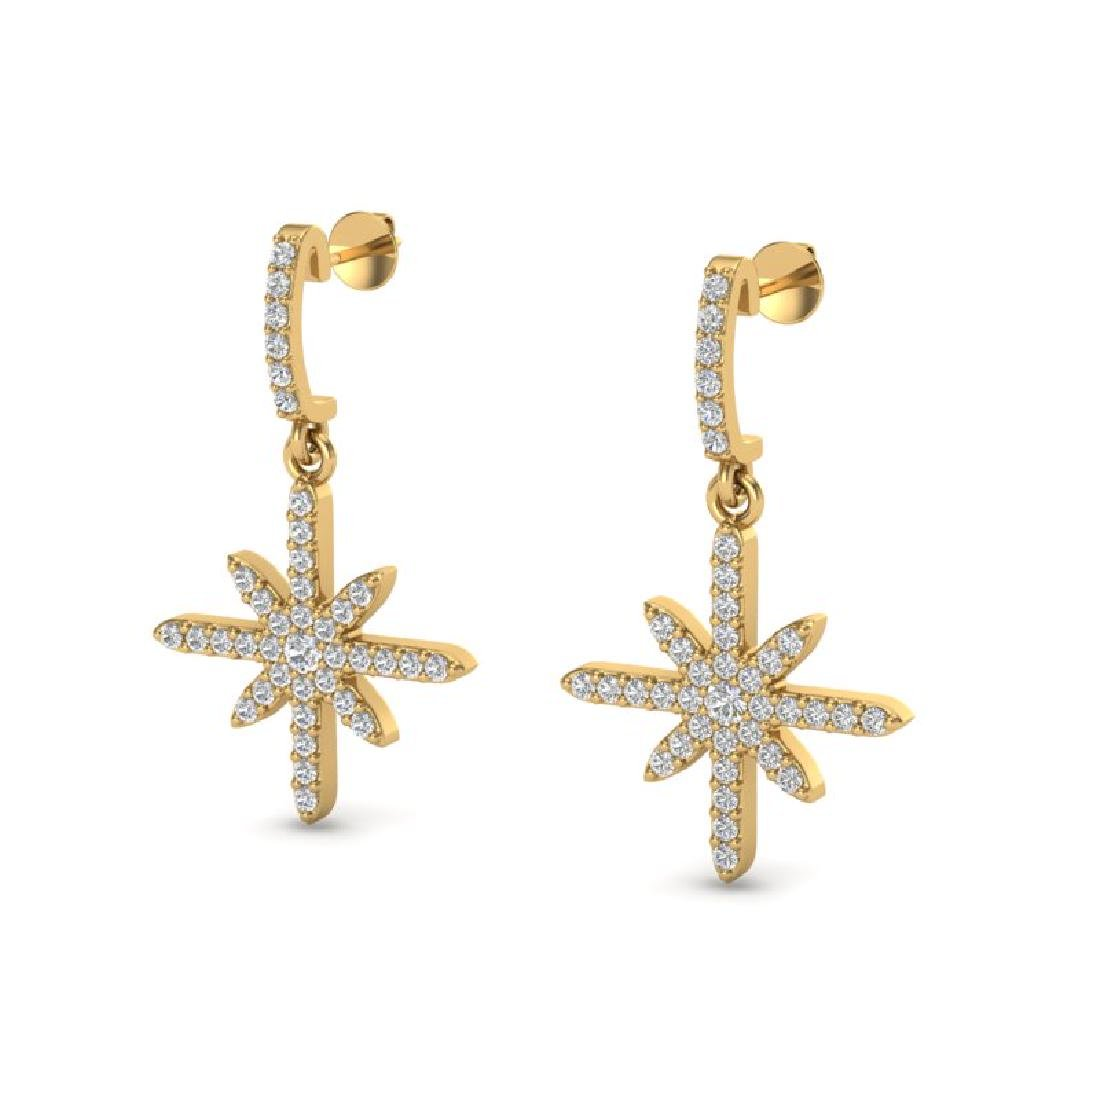 0.75 CTW Micro Pave VS/SI Diamond Earrings 18K Yellow